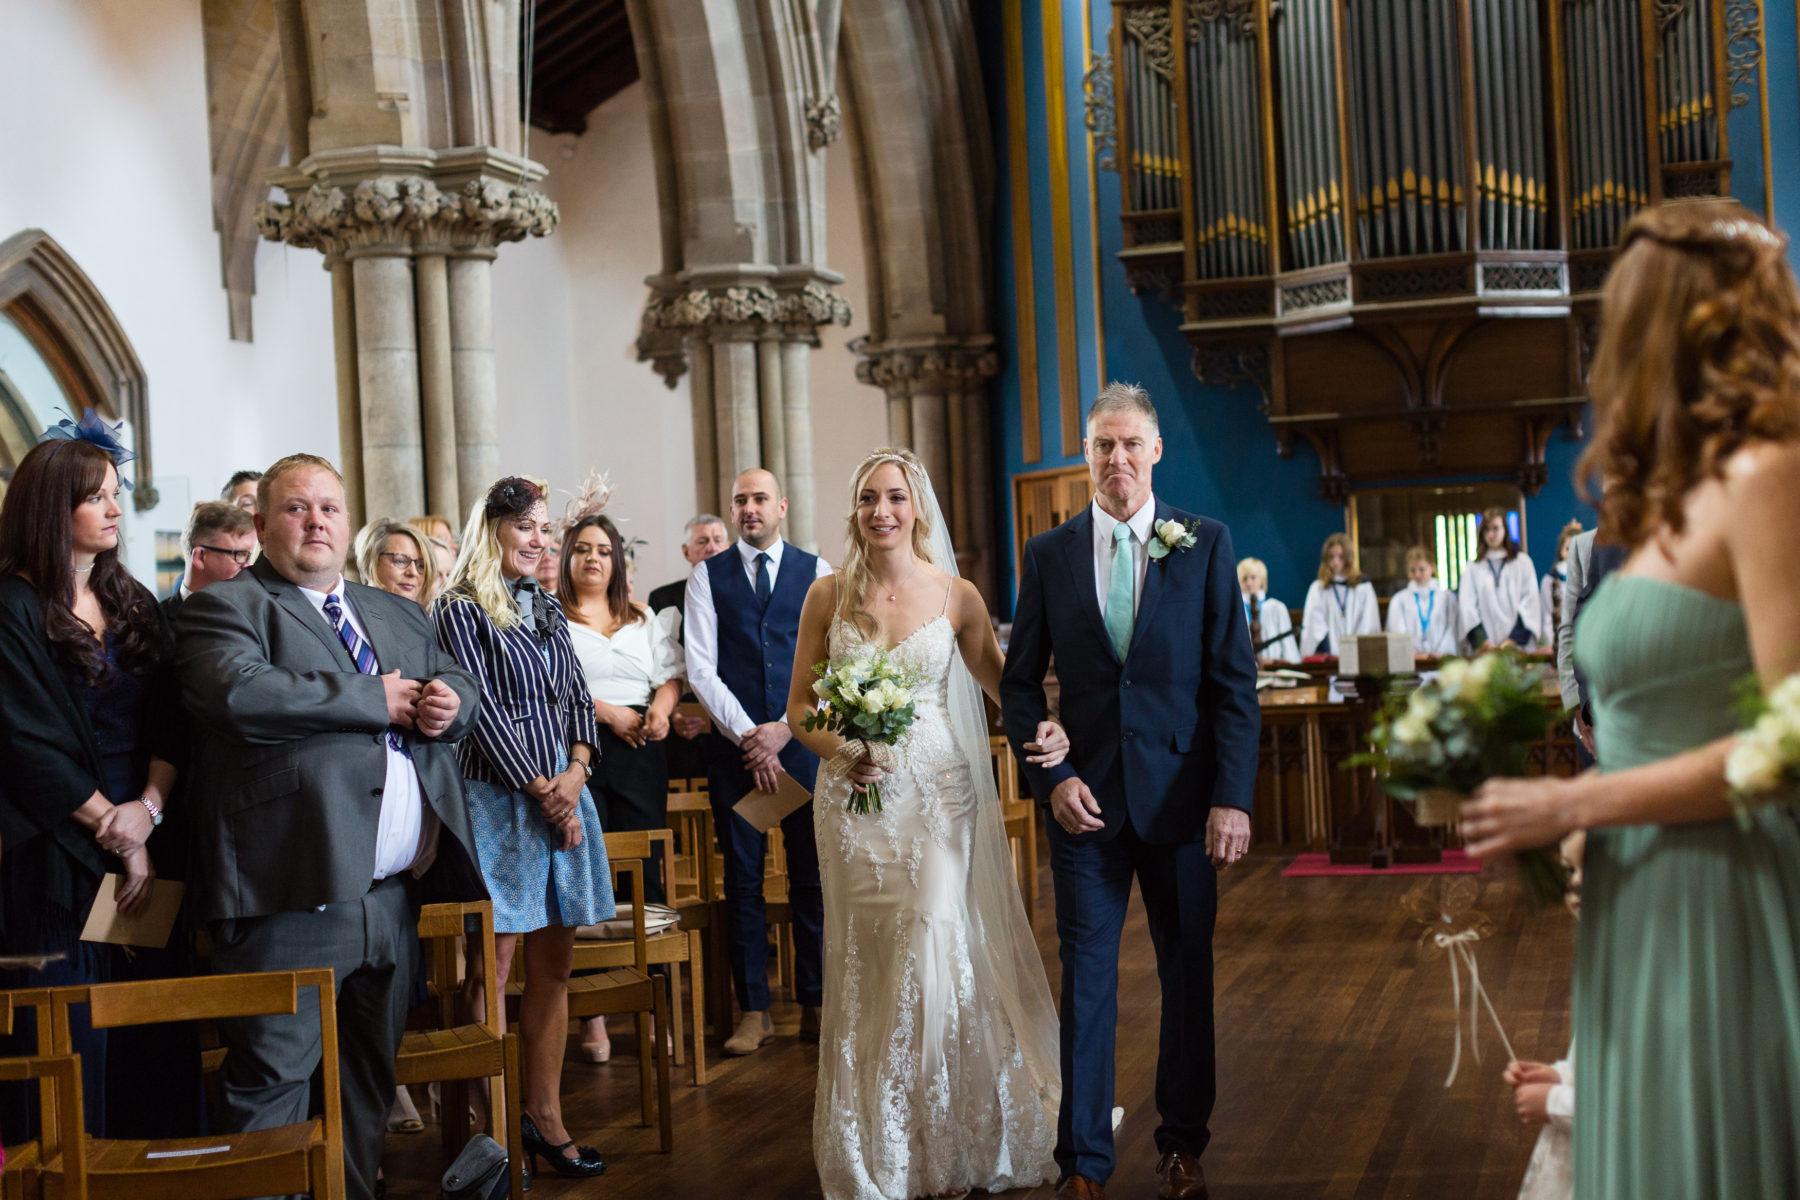 St Johns church wedding harrogate